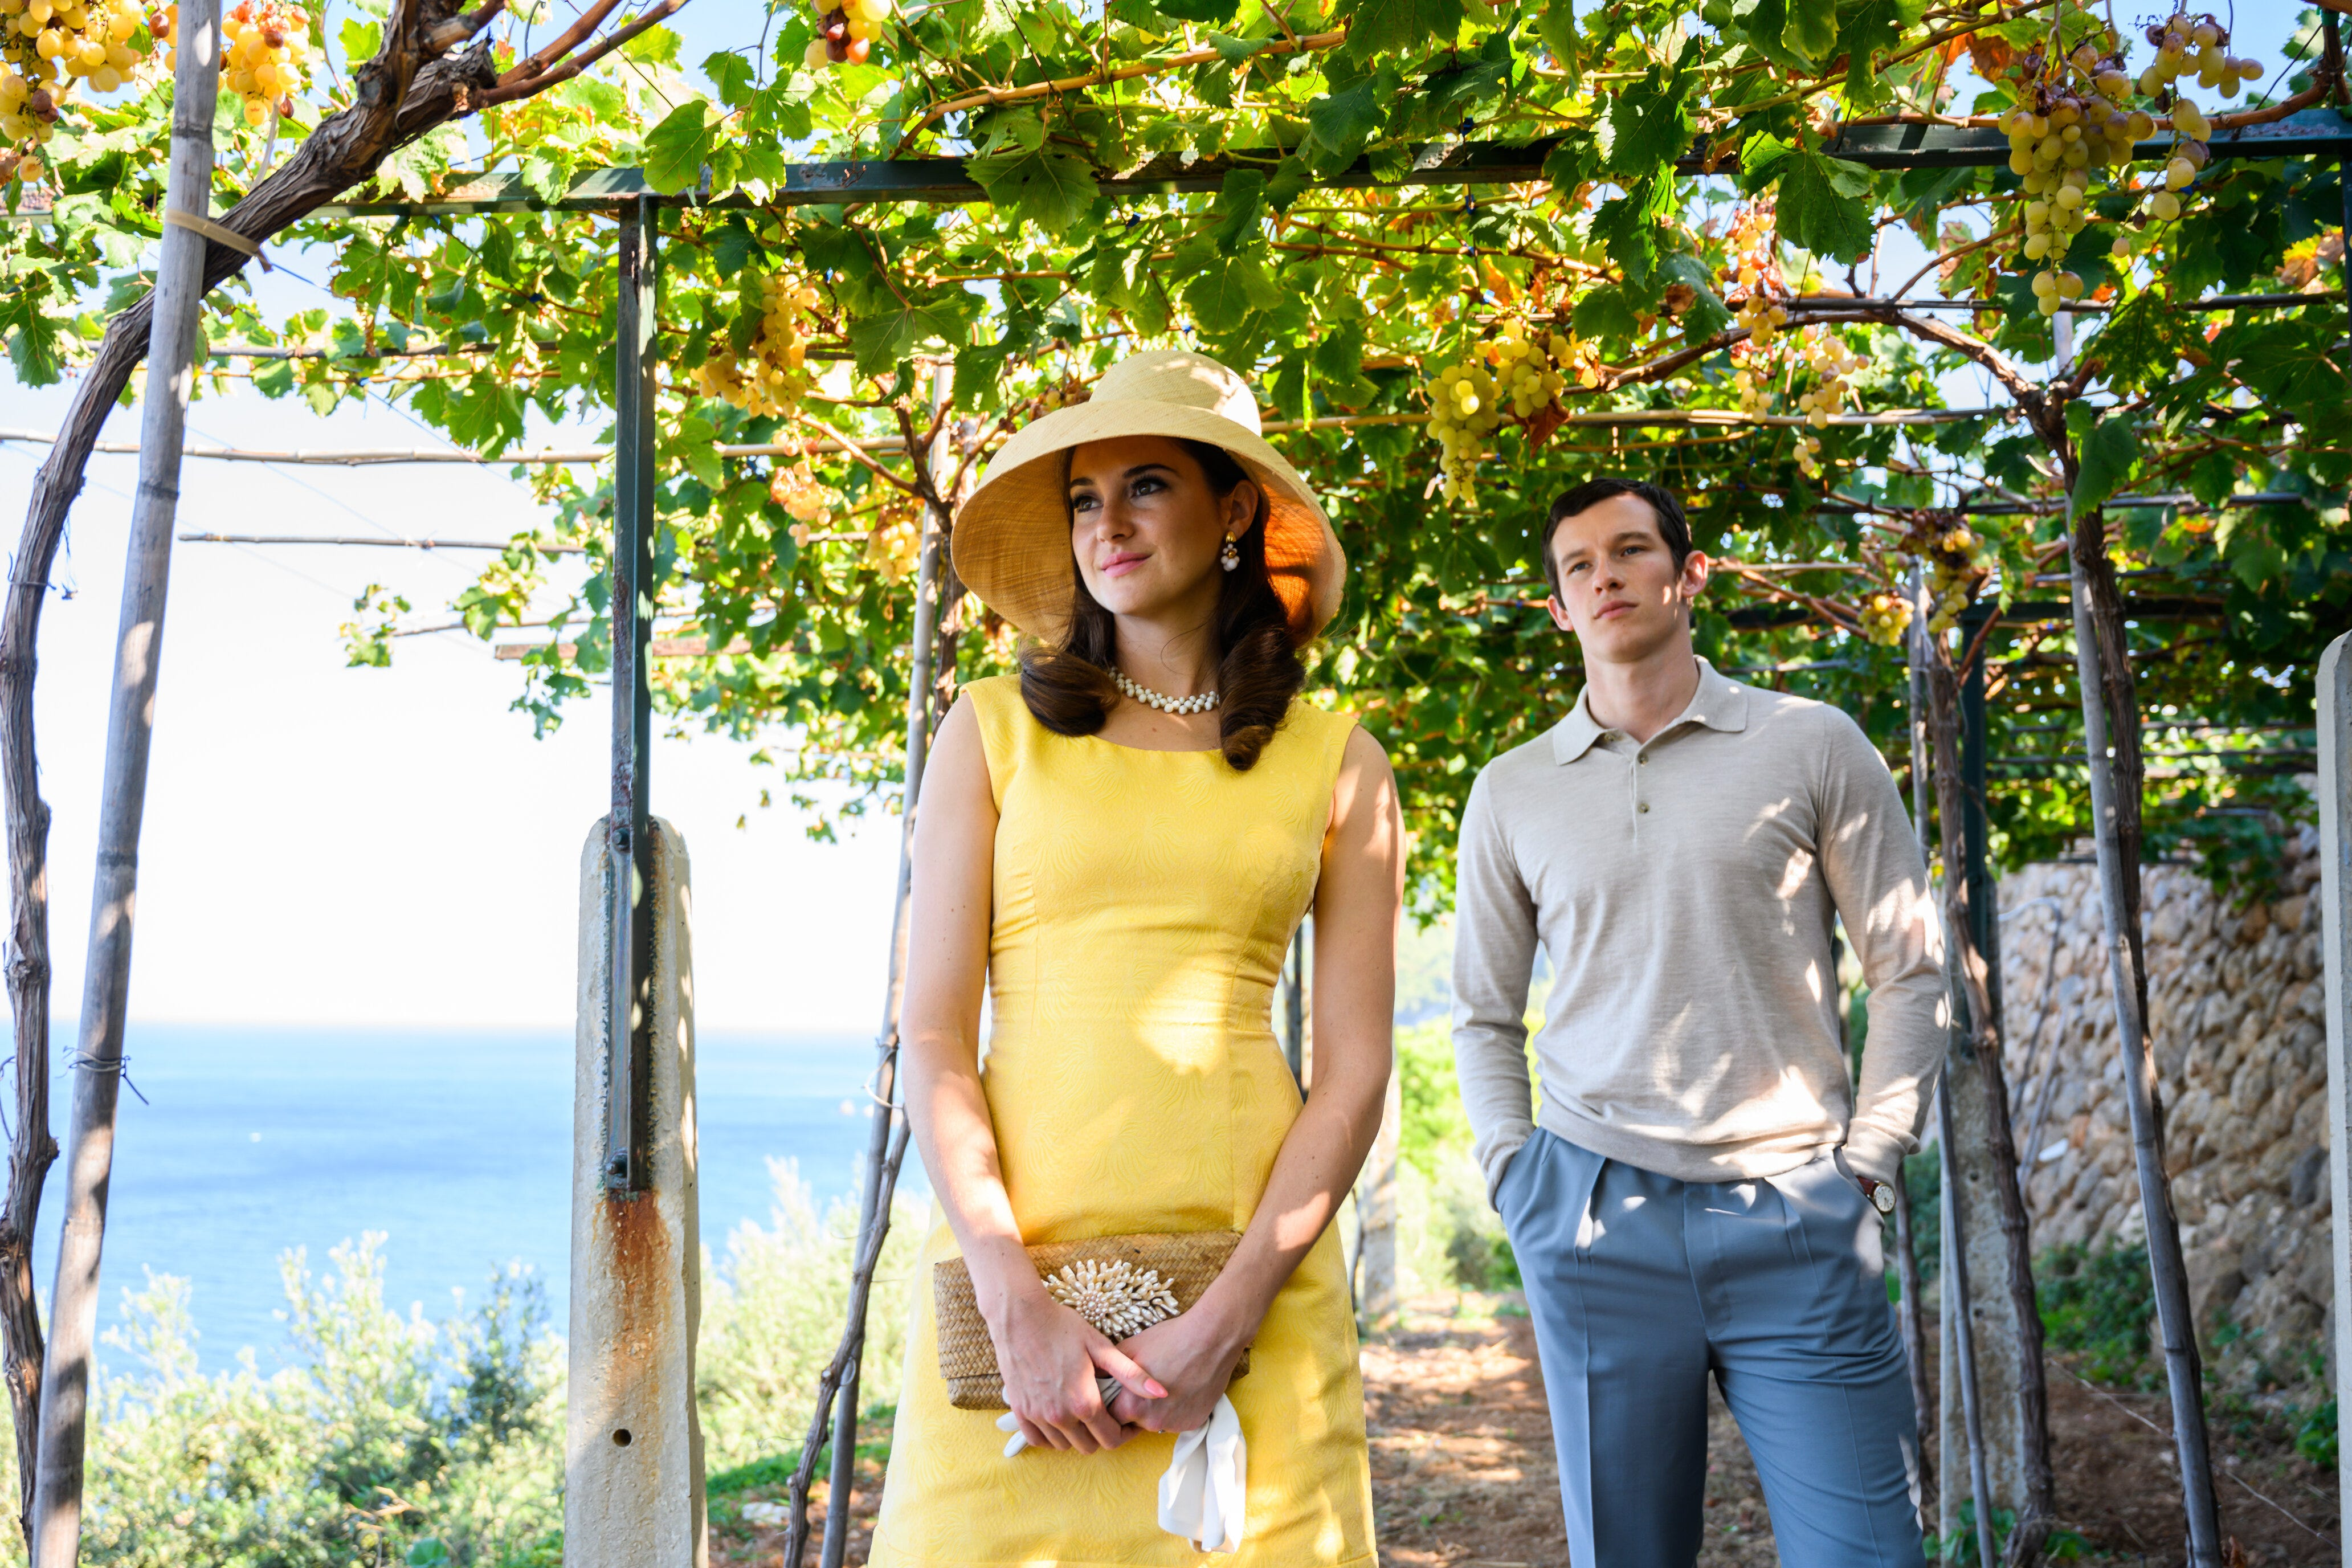 """Jennifer Stirling (Shailene Woodley, left) and Anthony O'Hare (Callum Turner) fall in love in 1960s Europe in """"The Last Letter from Your Lover."""""""